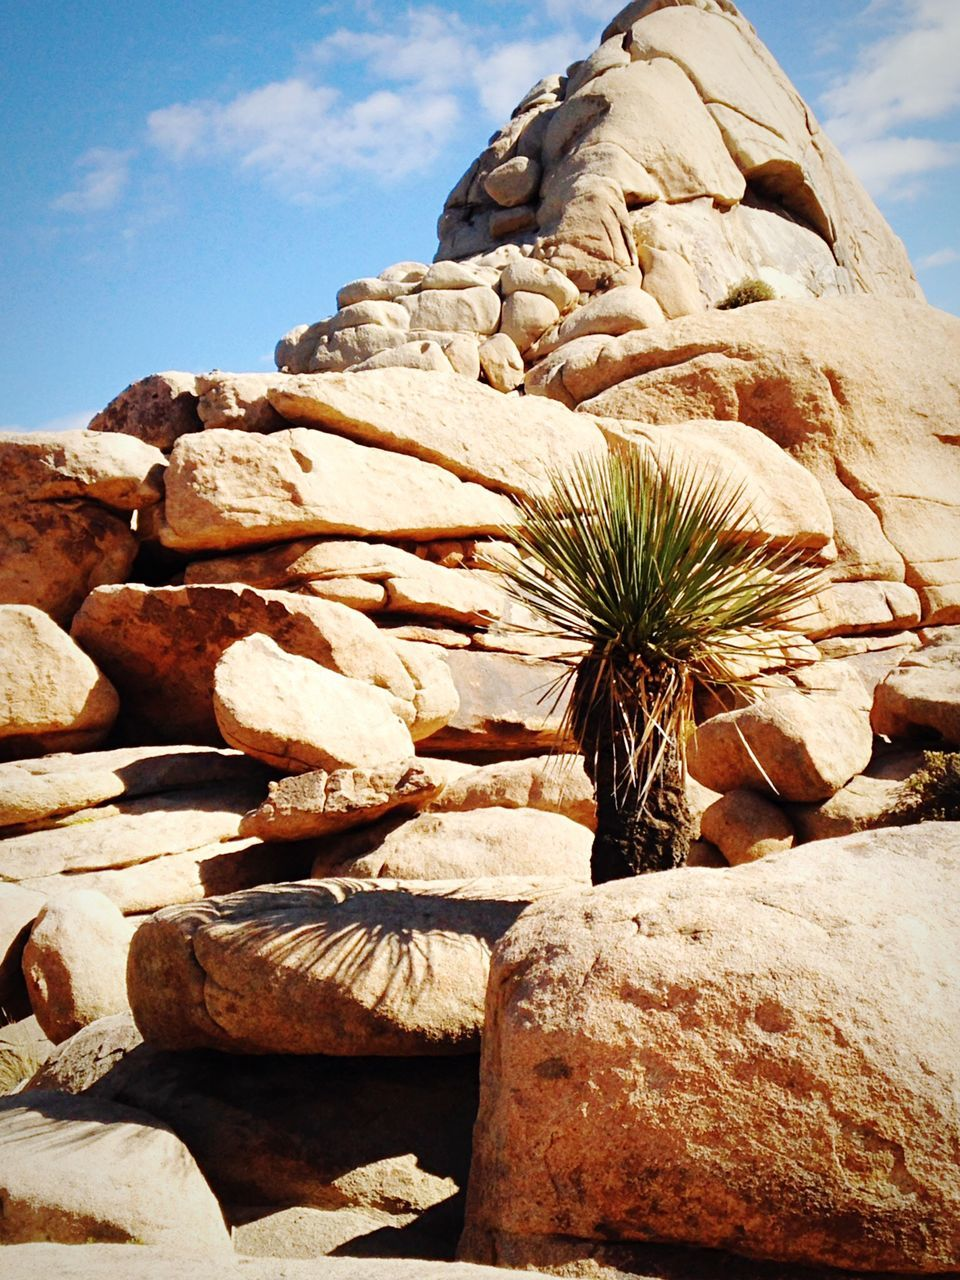 rock - object, nature, day, cactus, no people, outdoors, plant, physical geography, beauty in nature, growth, rock hoodoo, sky, close-up